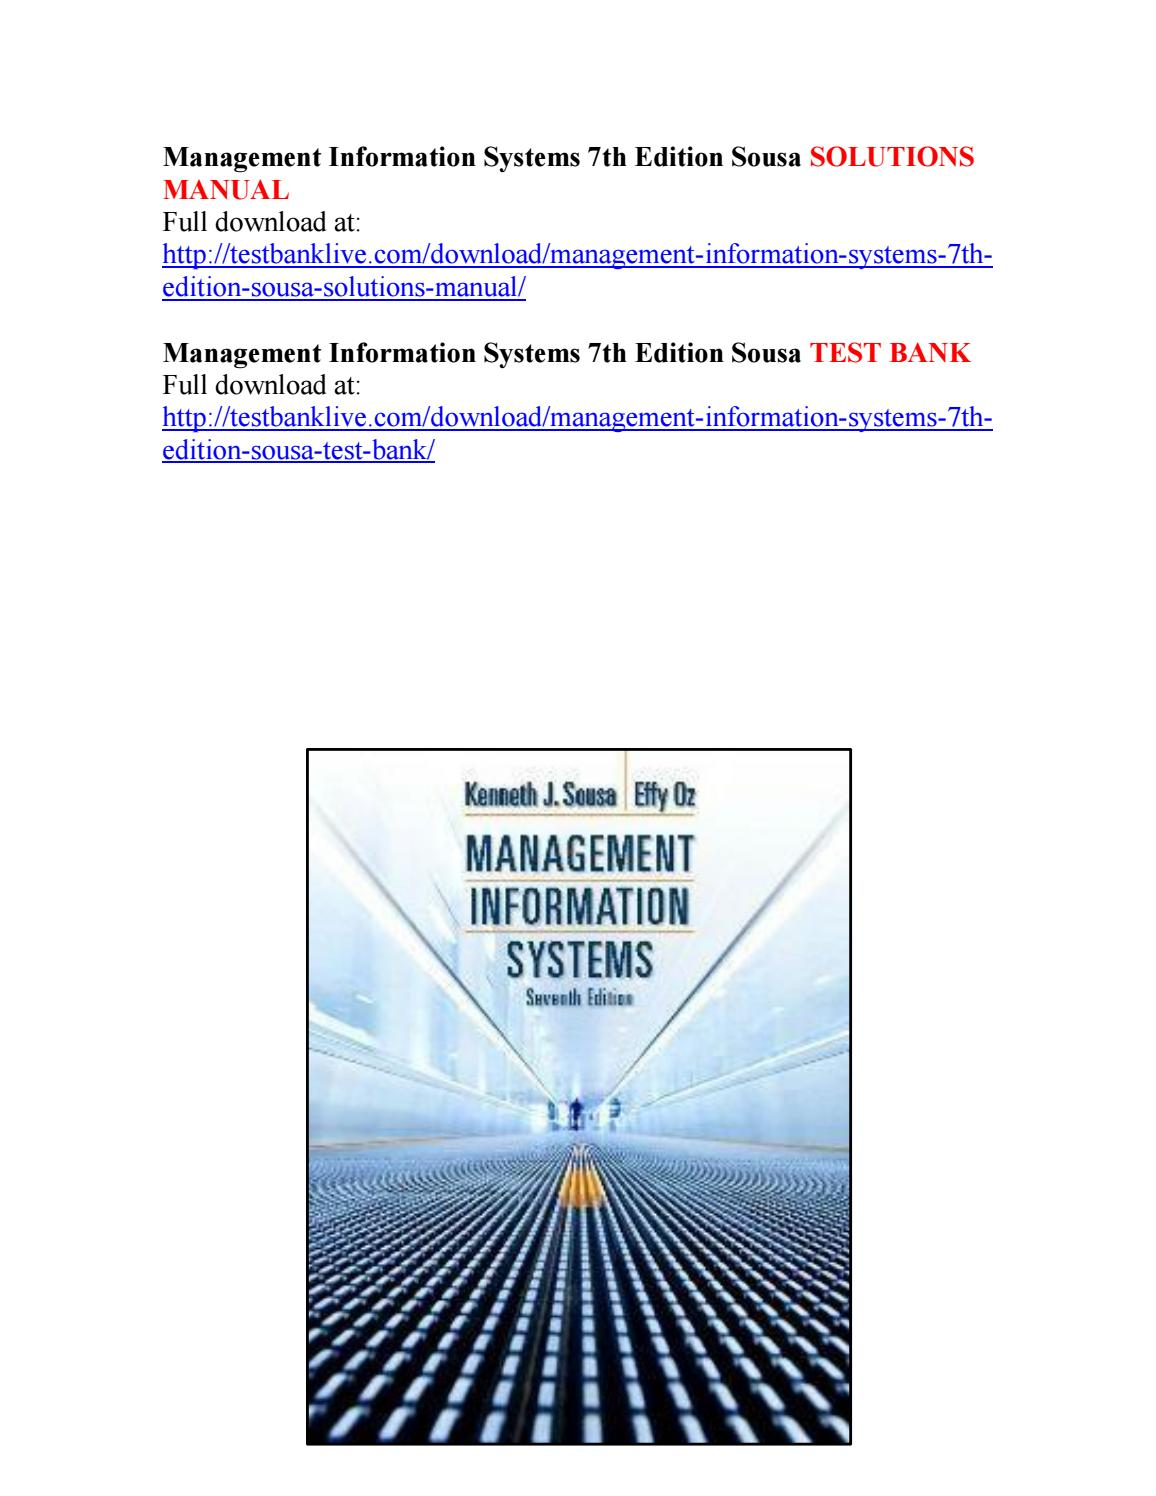 Management information systems 7th edition sousa solutions manual by  bach111 - issuu